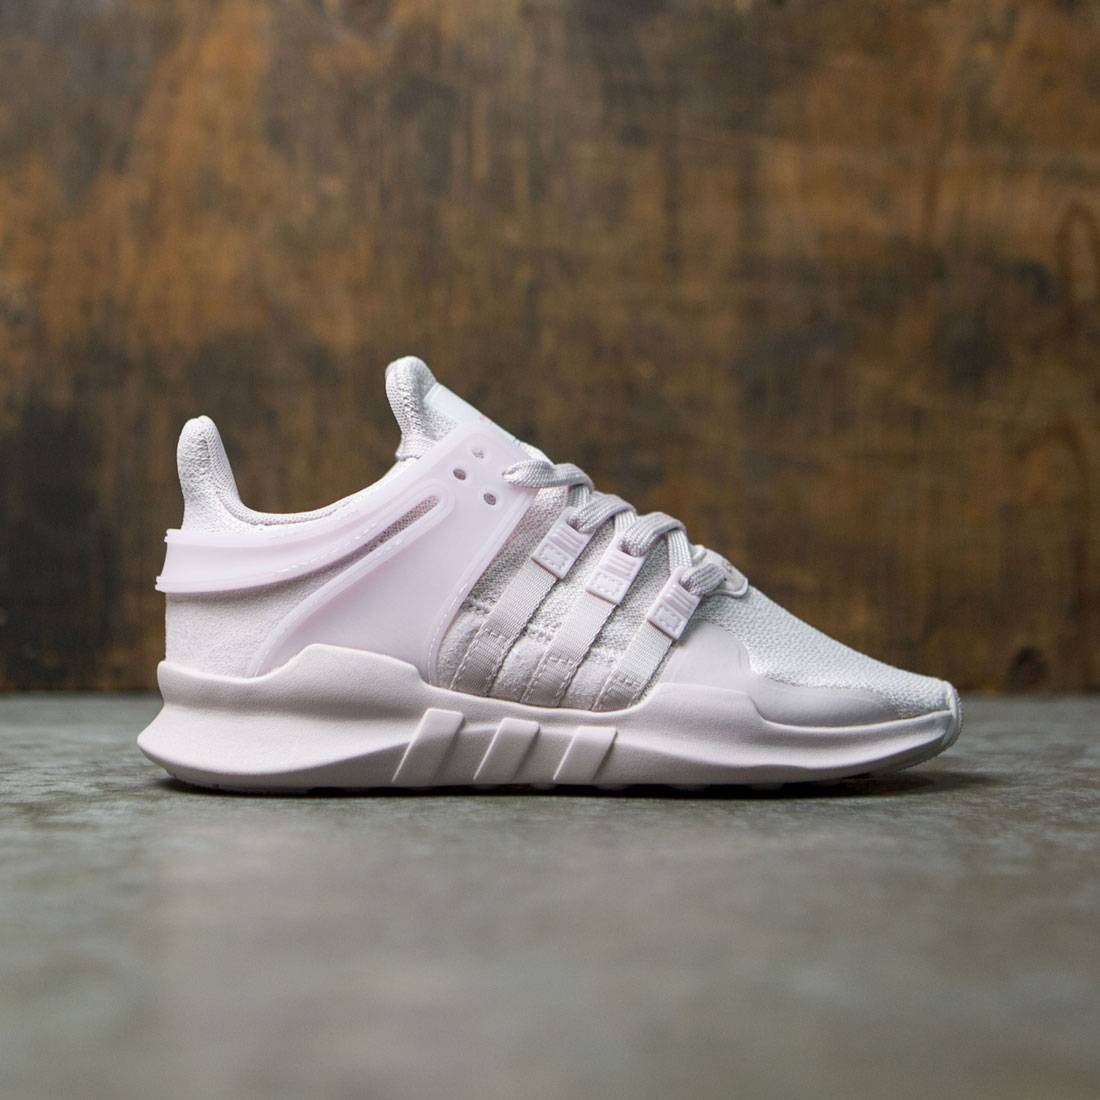 official photos 1fe05 1f2b6 Adidas Women EQT Support ADV purple ice purple footwear whit